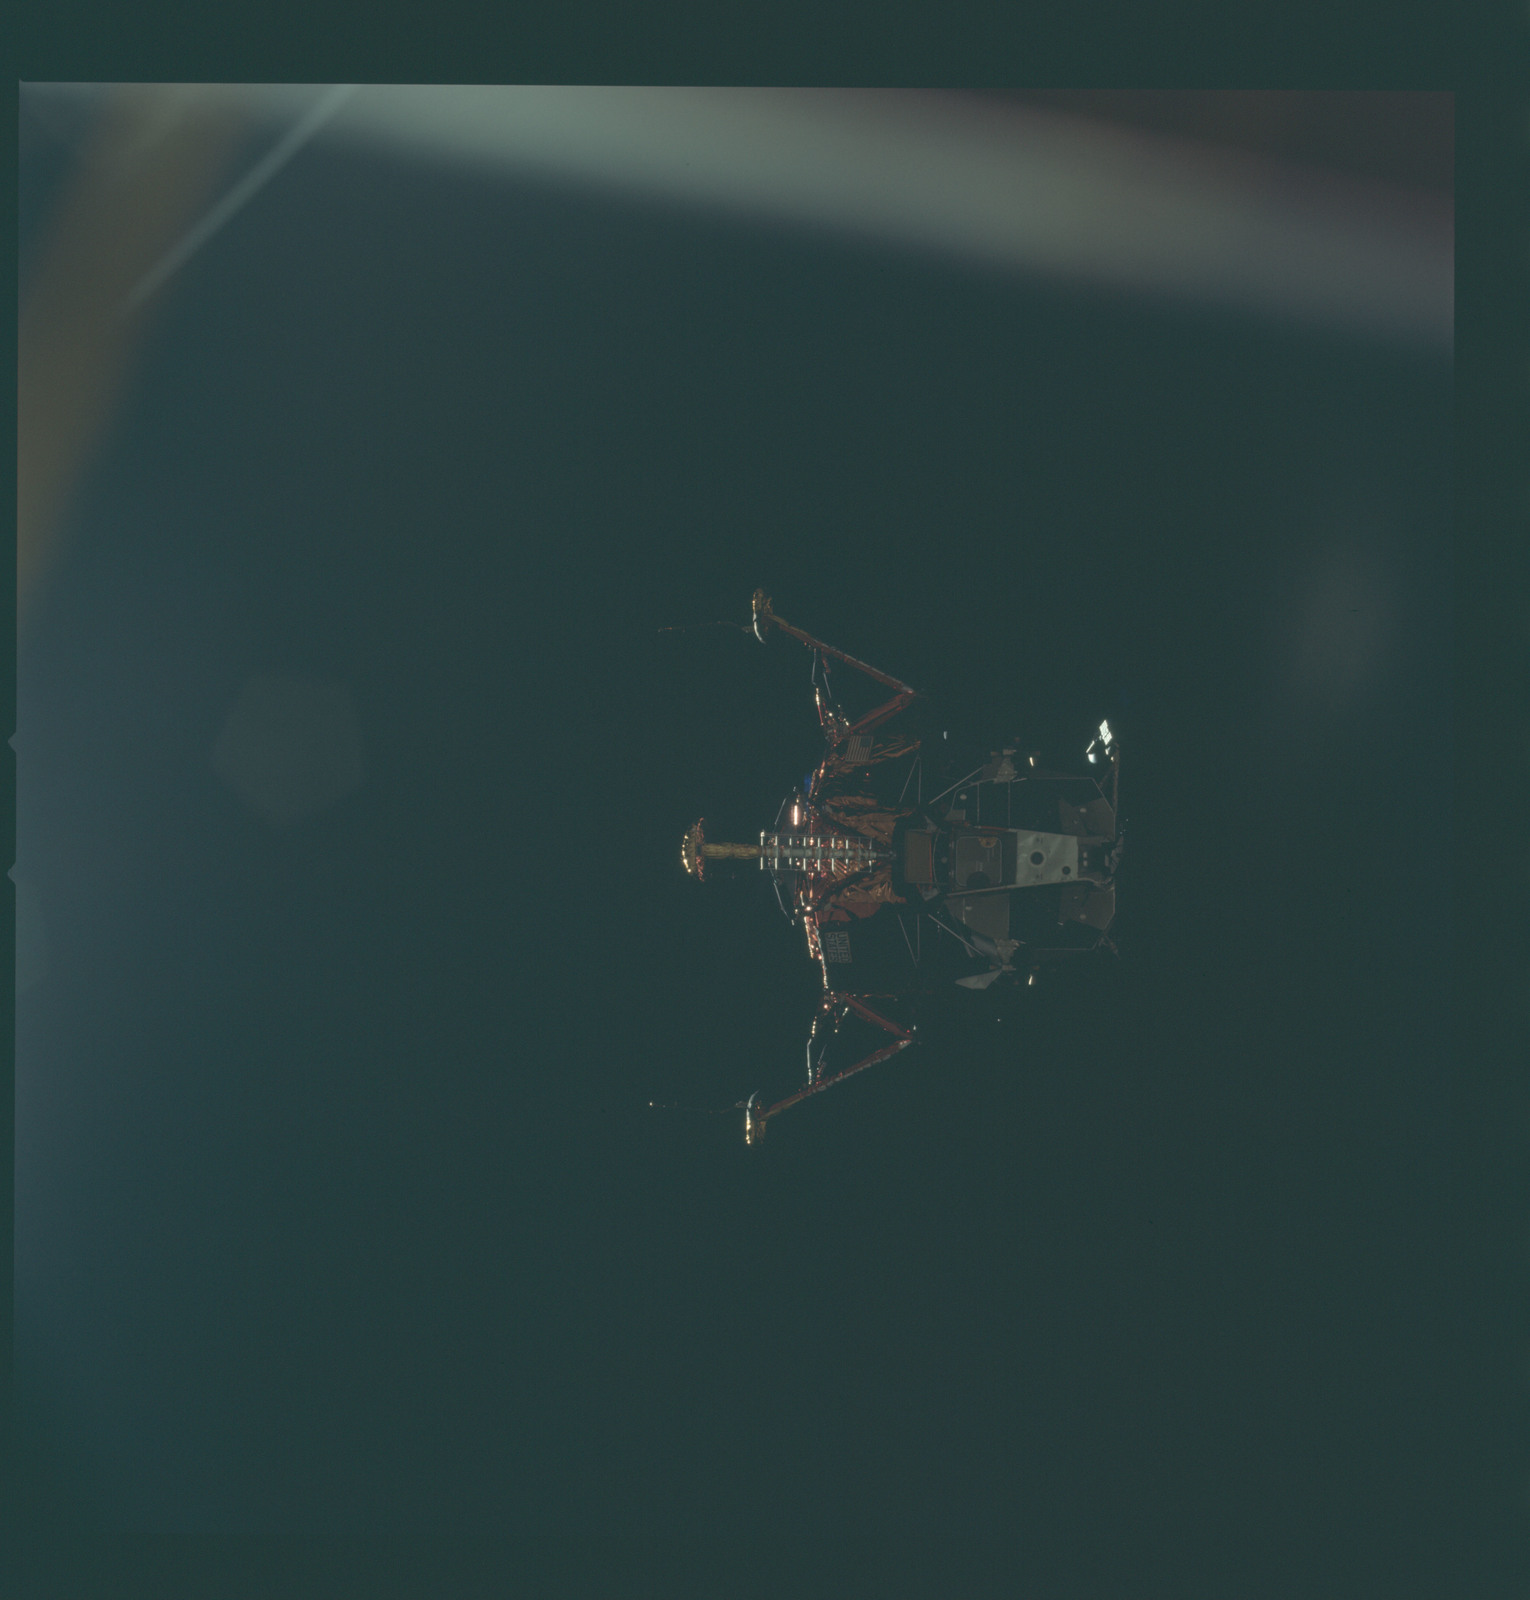 AS11-44-6590 - Apollo 11 - Apollo 11 Mission image - View of Lunar Module separation from the Command Module